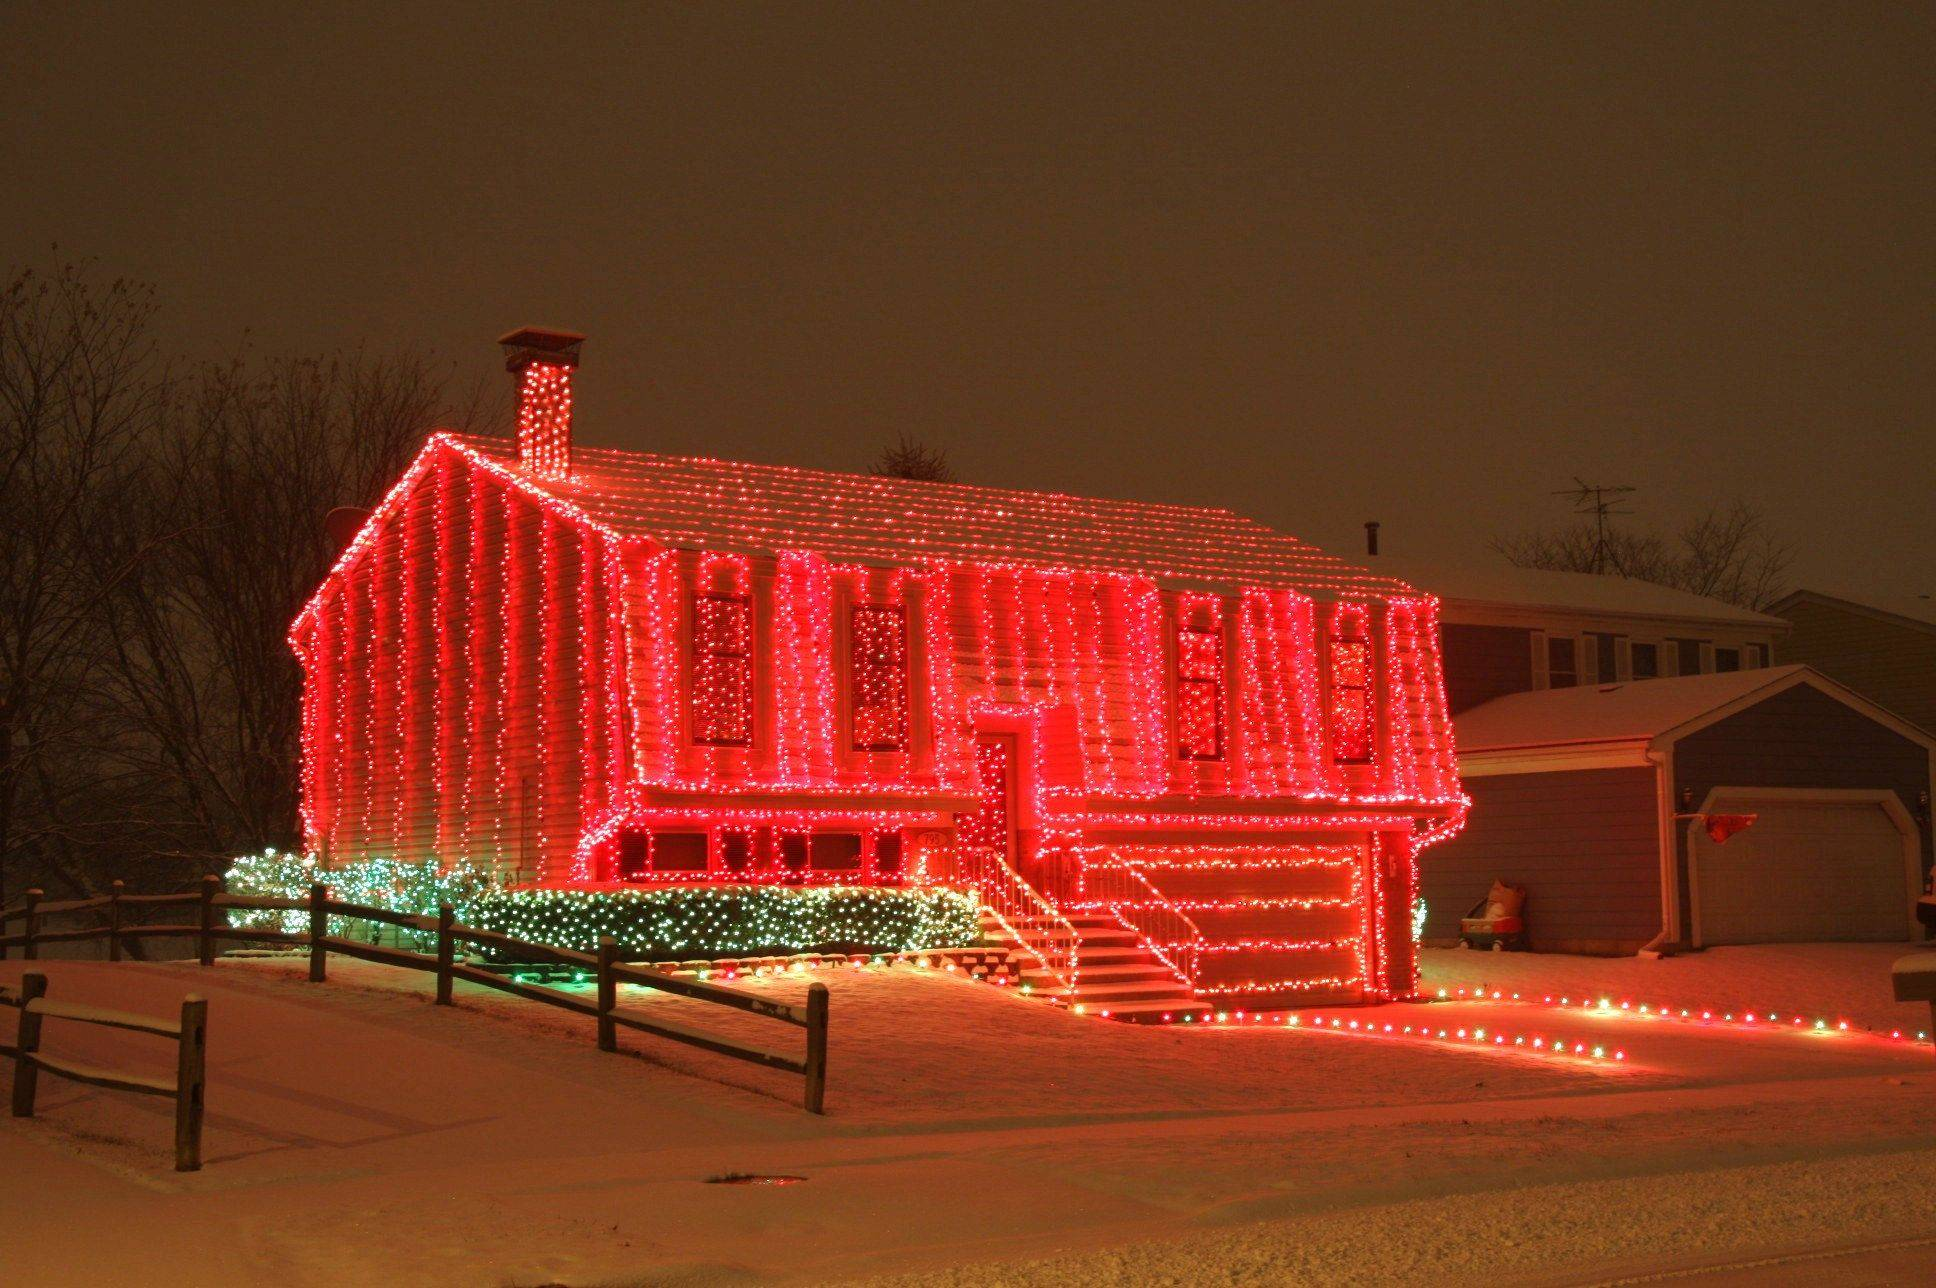 21,125 lights cover all four sides and the roof of the Ransdell home at 795 W. Bryn Mawr Ave. in Roselle.